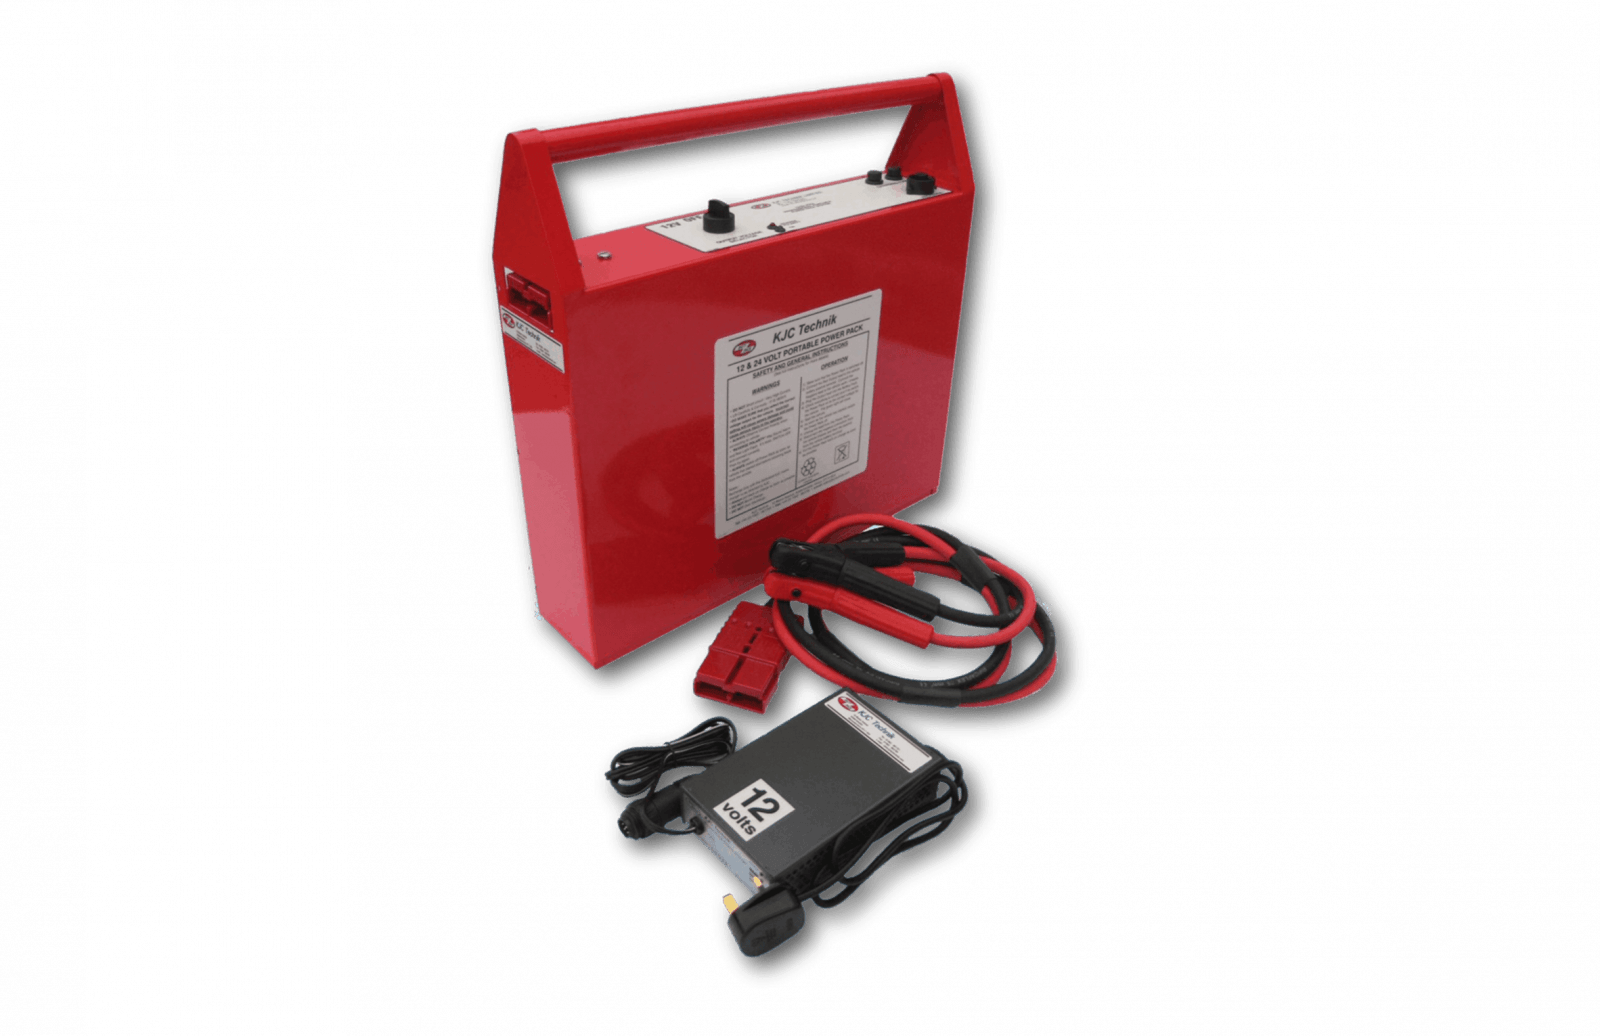 cropped cropped 24V Professional Power Pack K1224 37 NB SH WEB 2